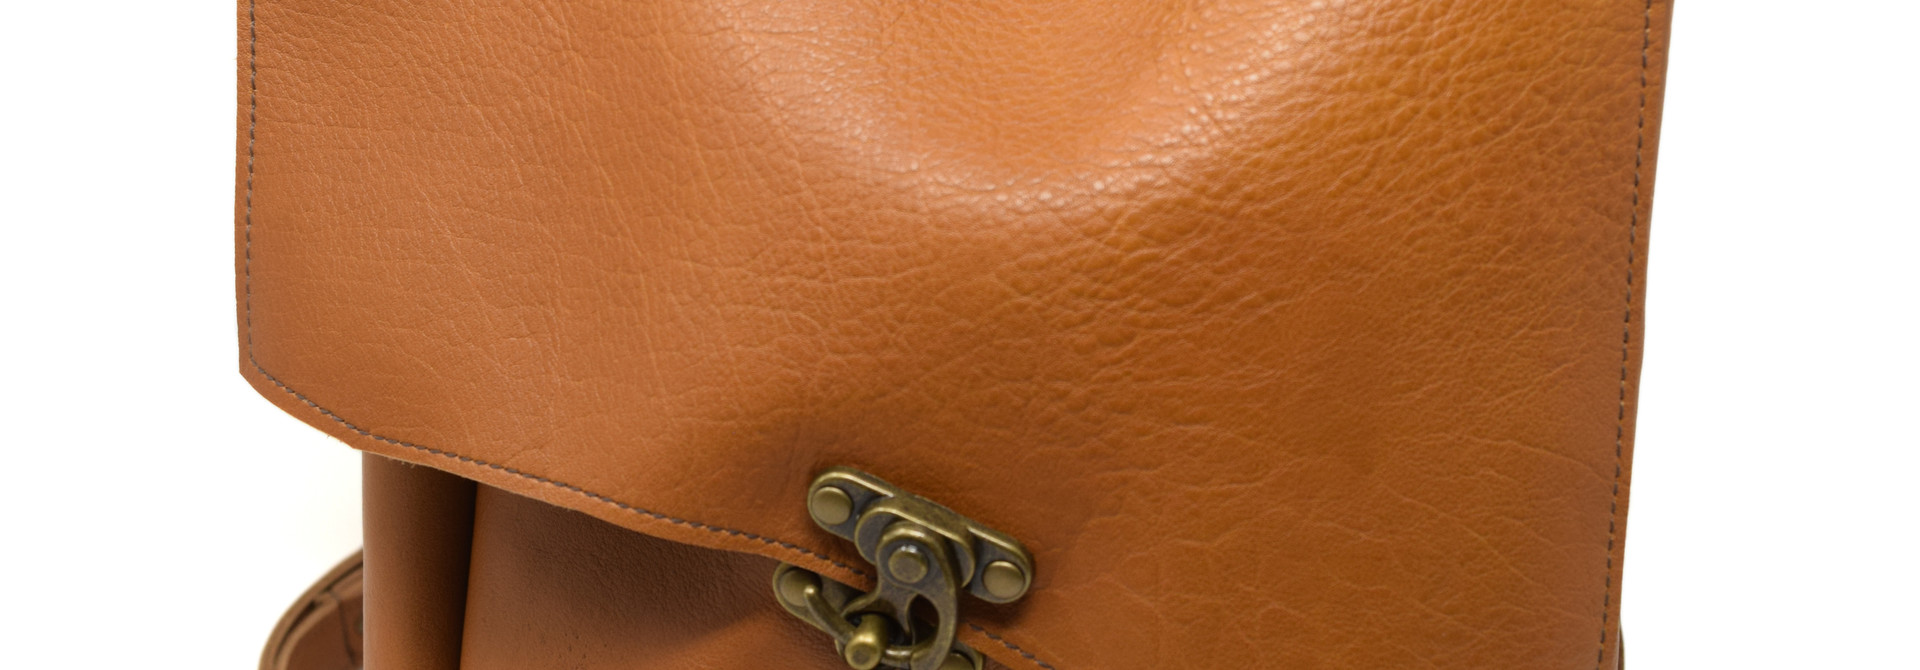 Small Leather Backpack Light Burnt Sienna